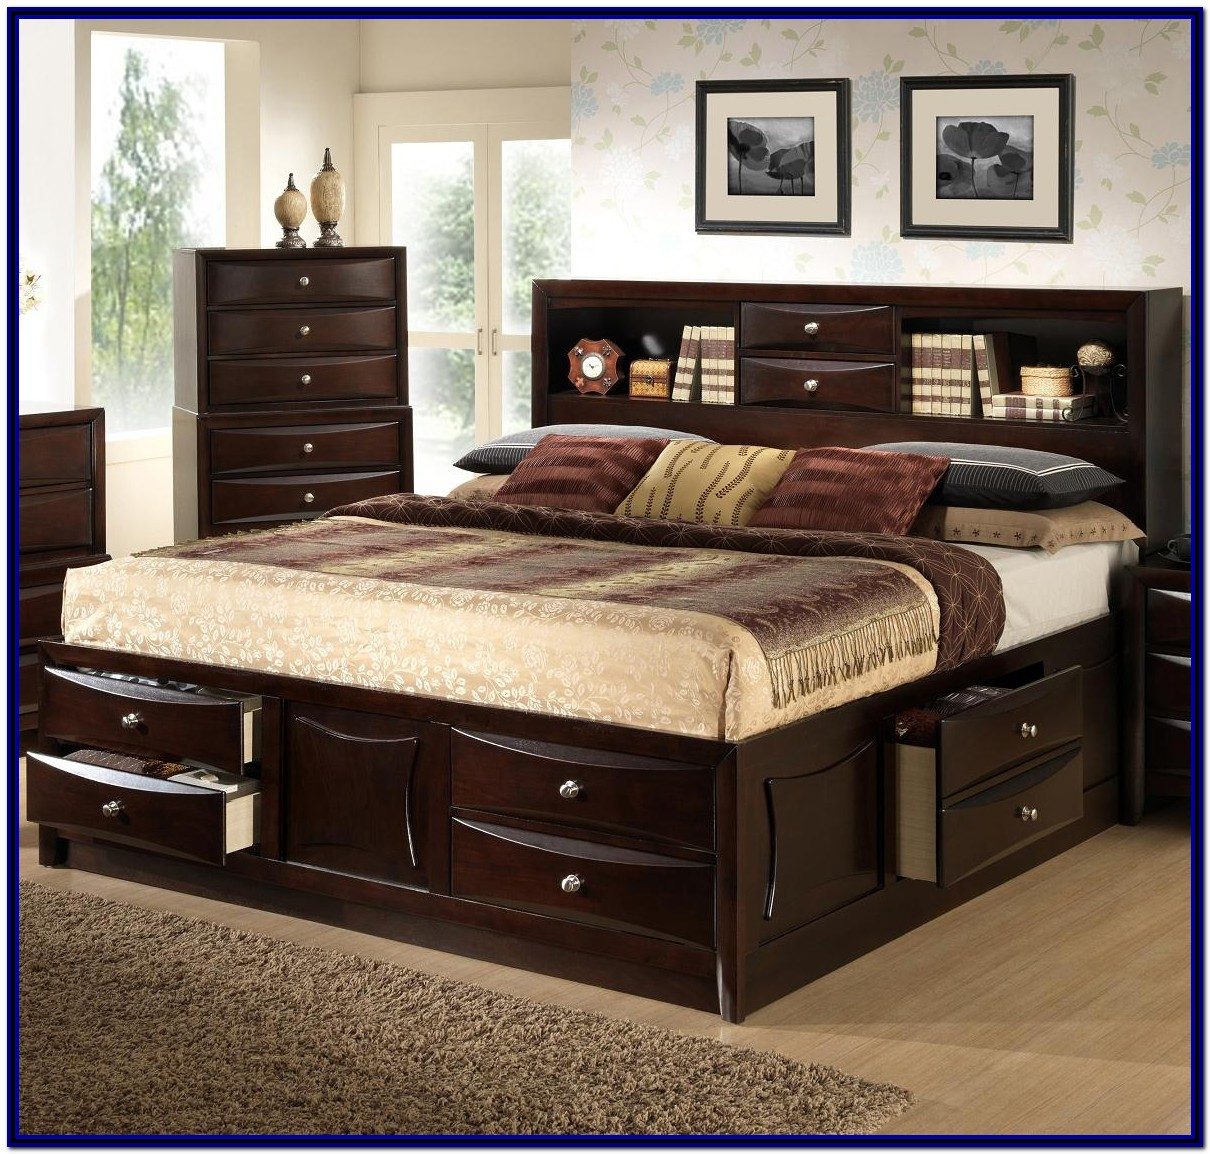 Queen Bed Frame With Storage Headboard